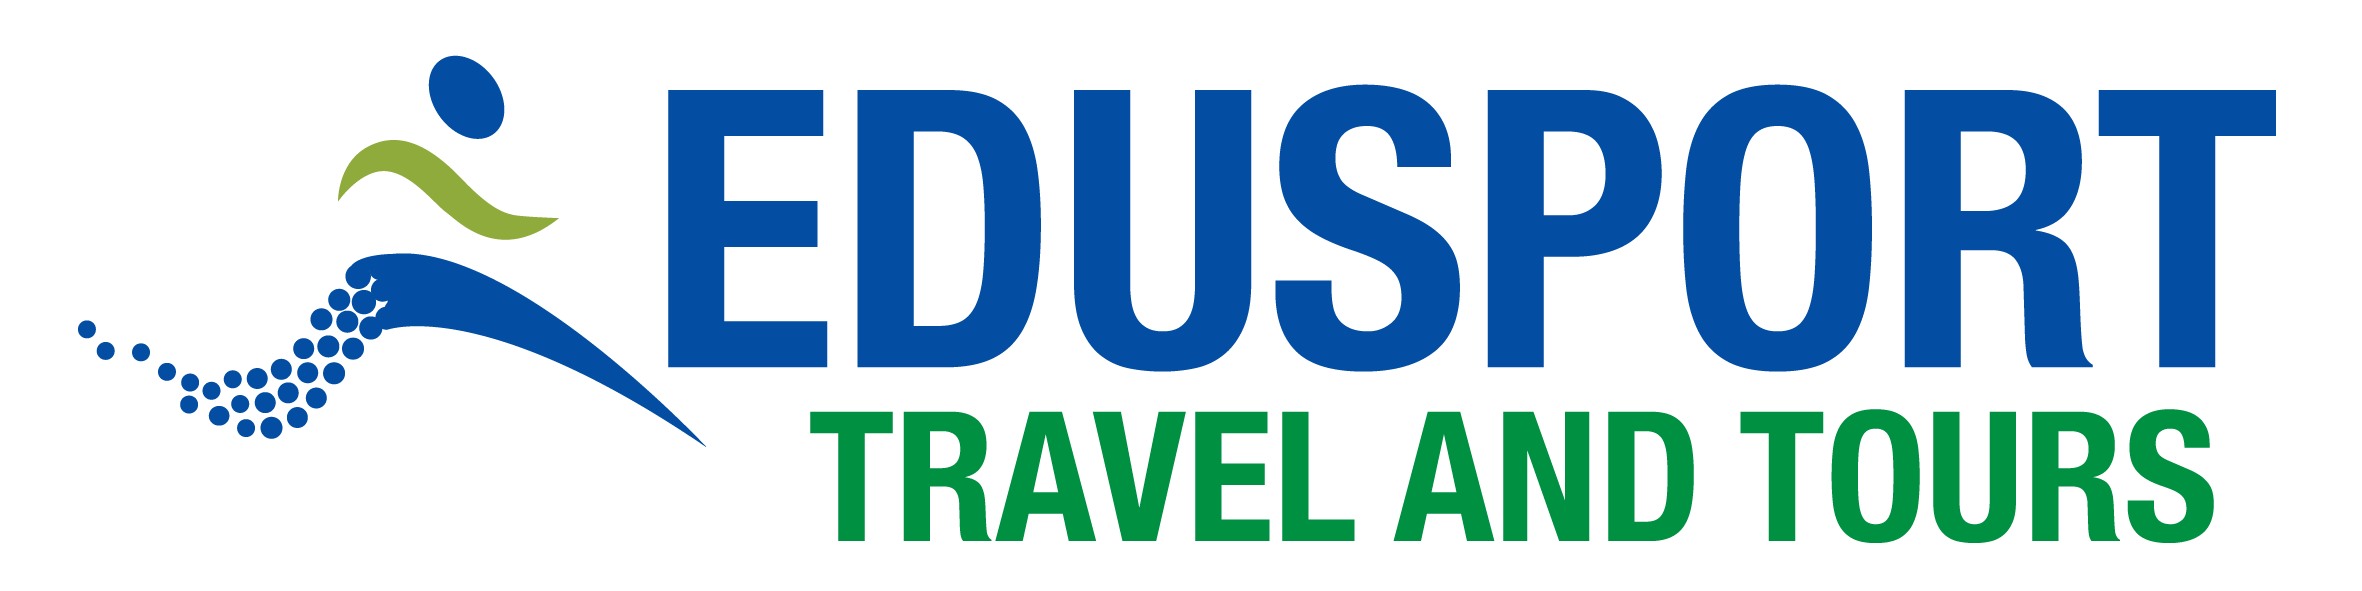 Edusport Travel & Tours